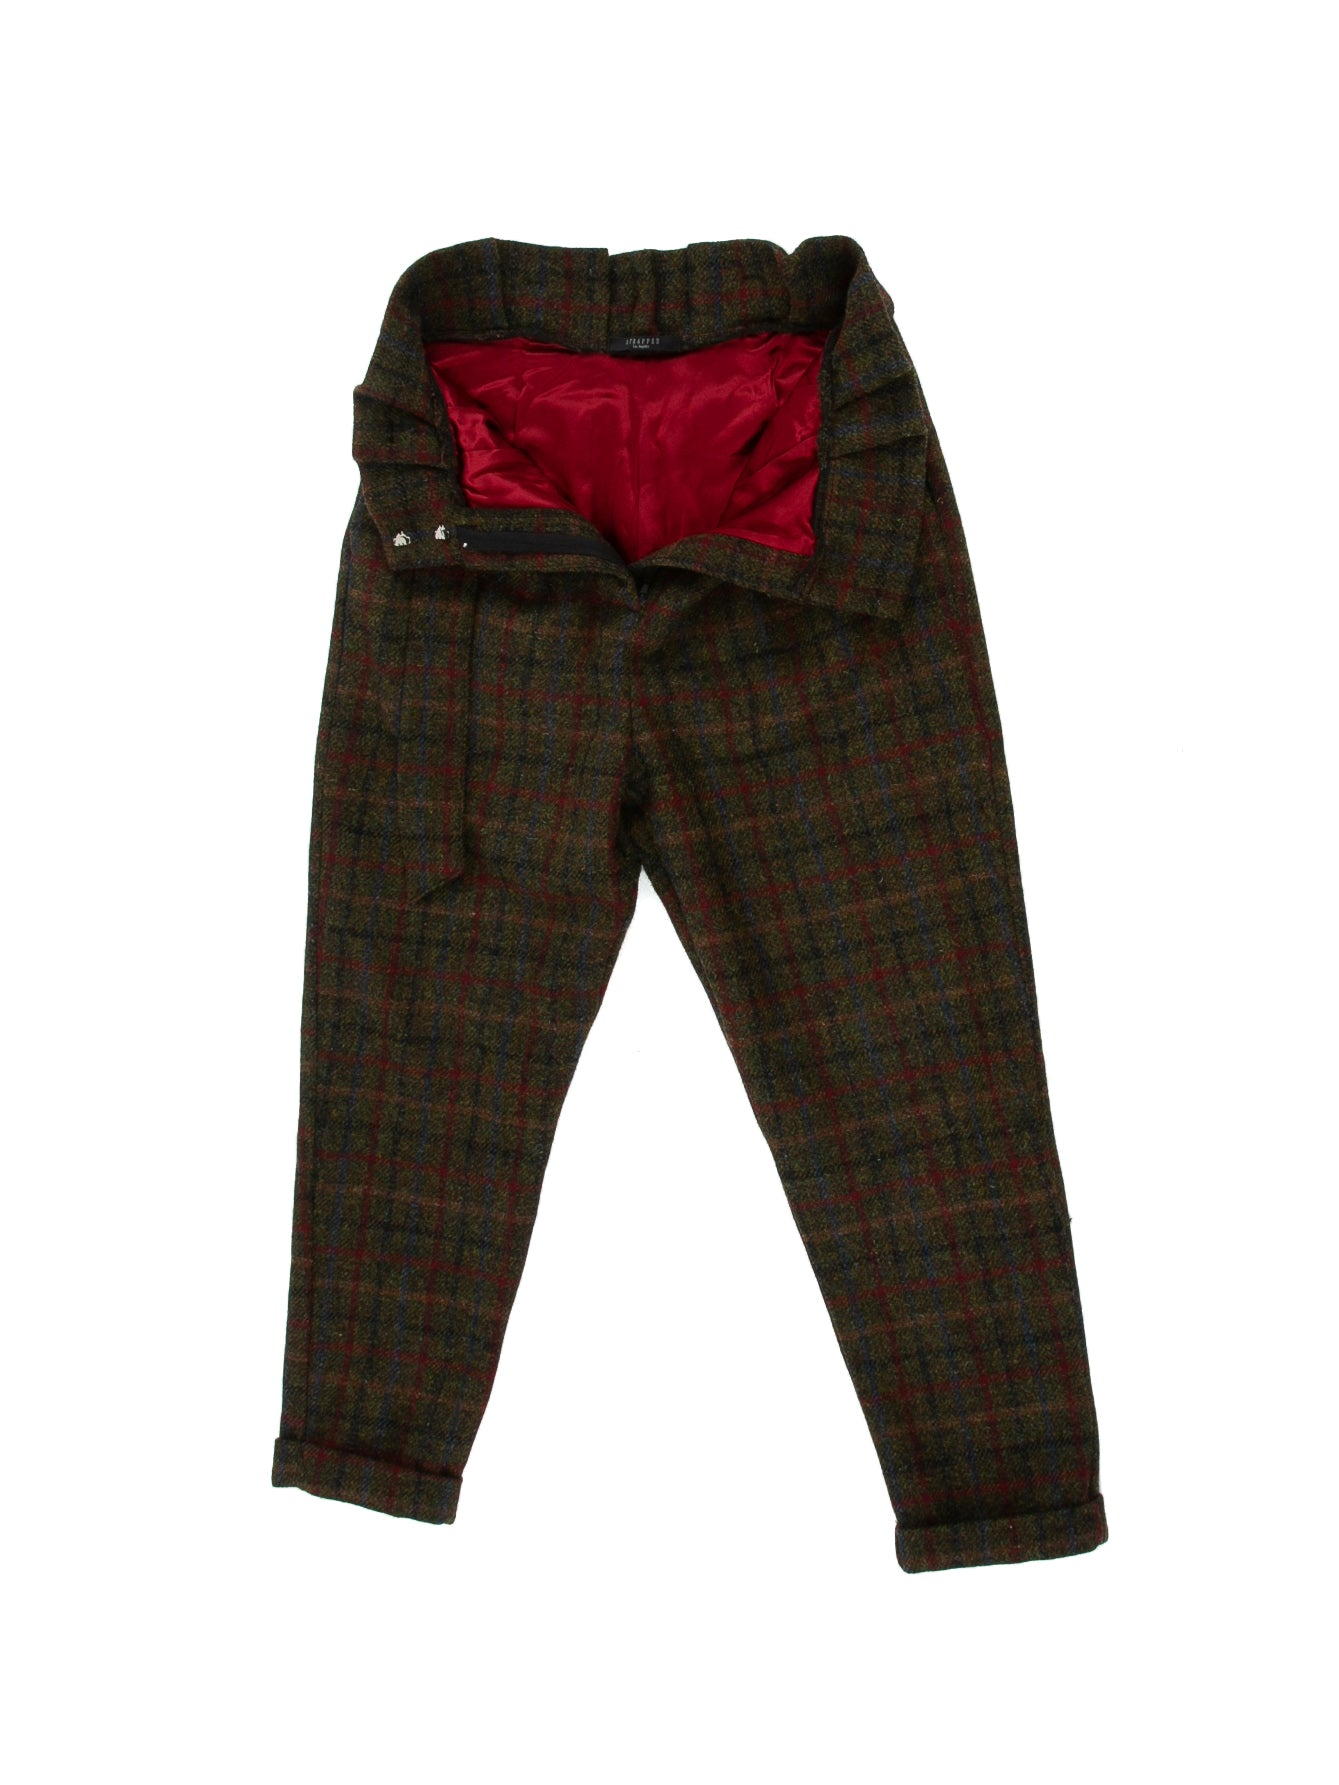 Cinch Pant in Forest Plaid